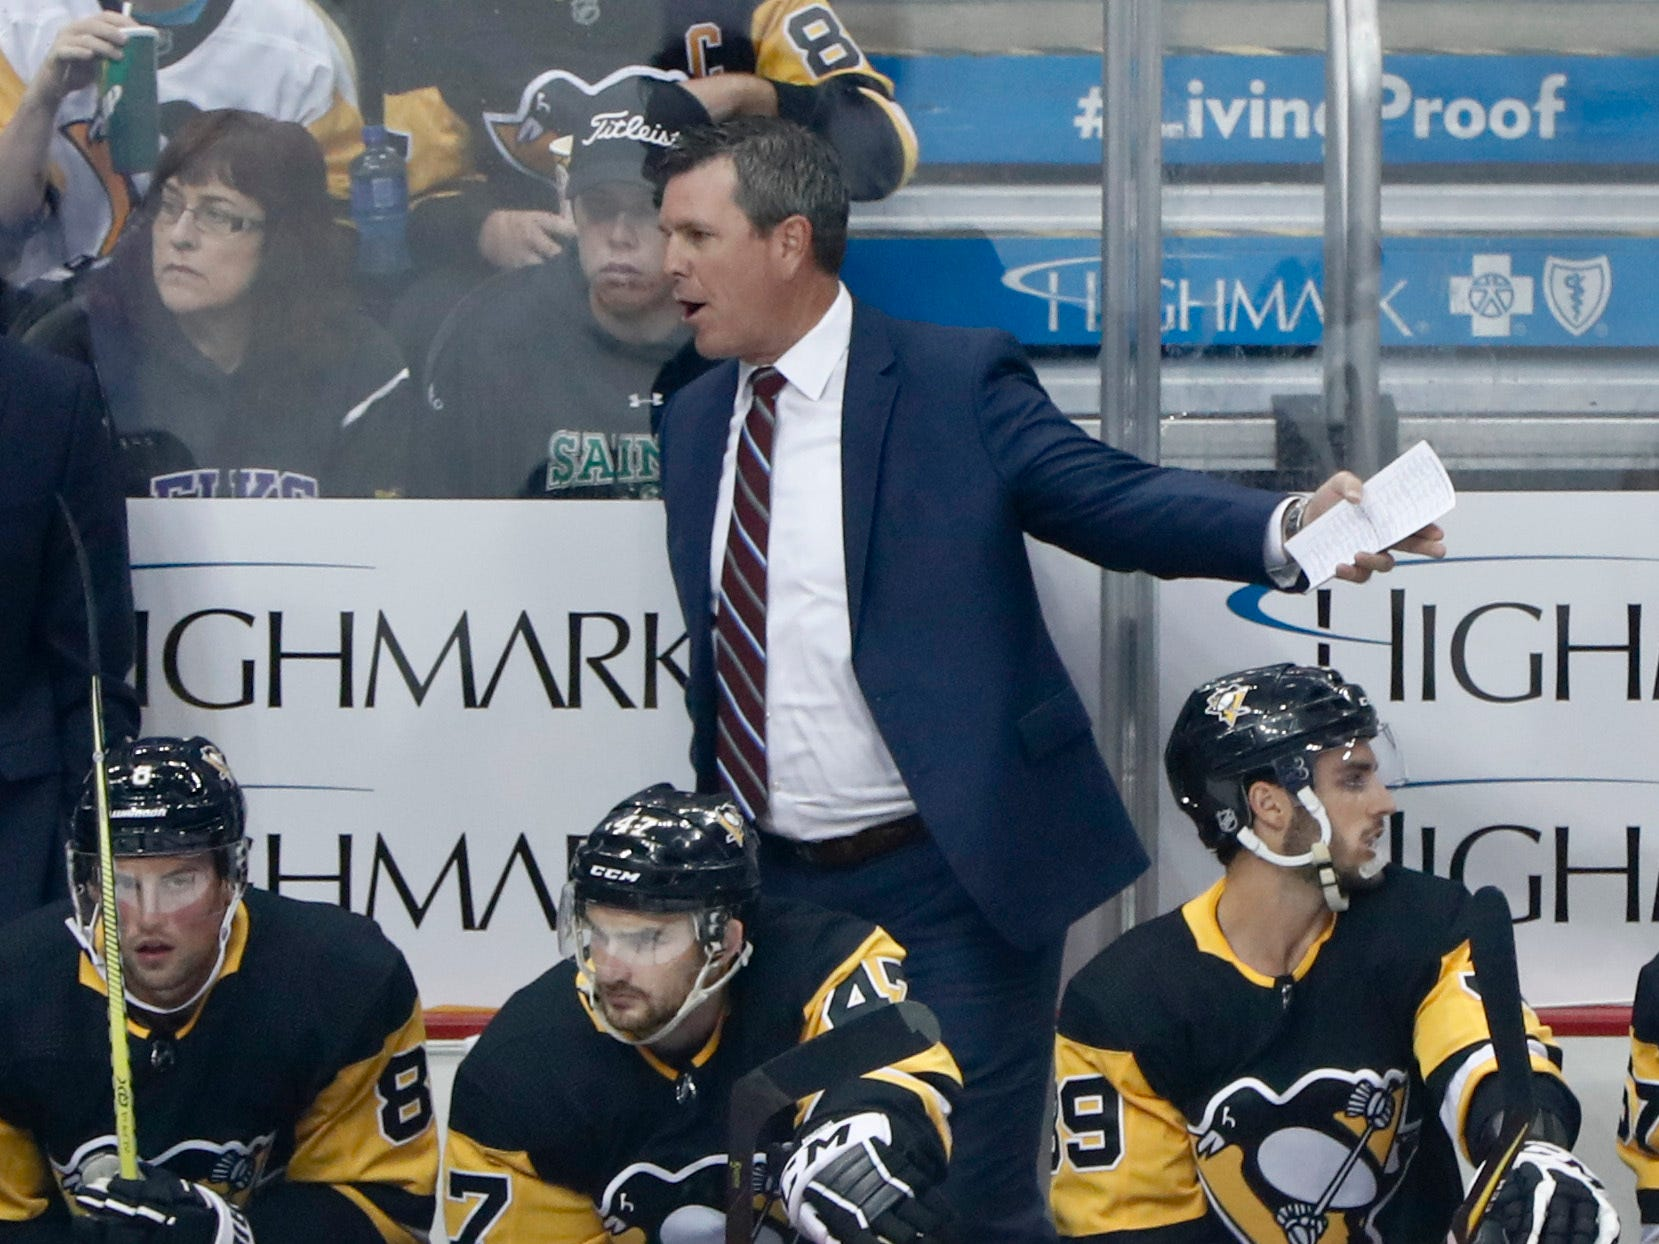 Pittsburgh Penguins head coach Mike Sullivan is back behind the bench after return from leave for the death of his father.